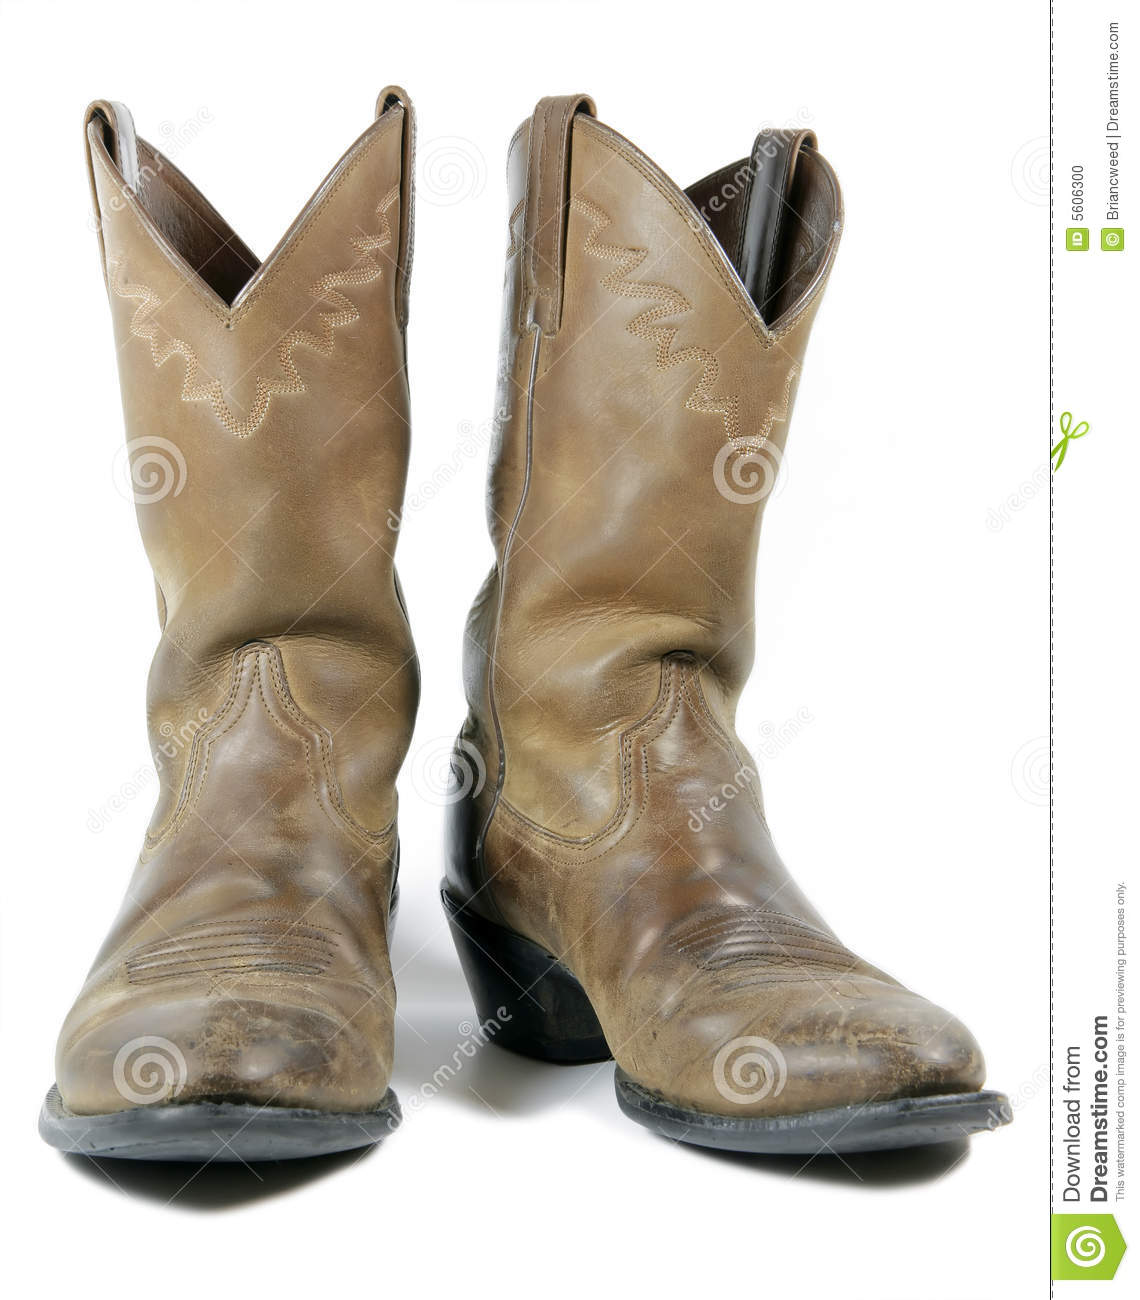 Cowboy Boots 2 Stock Photo - Image: 5606300